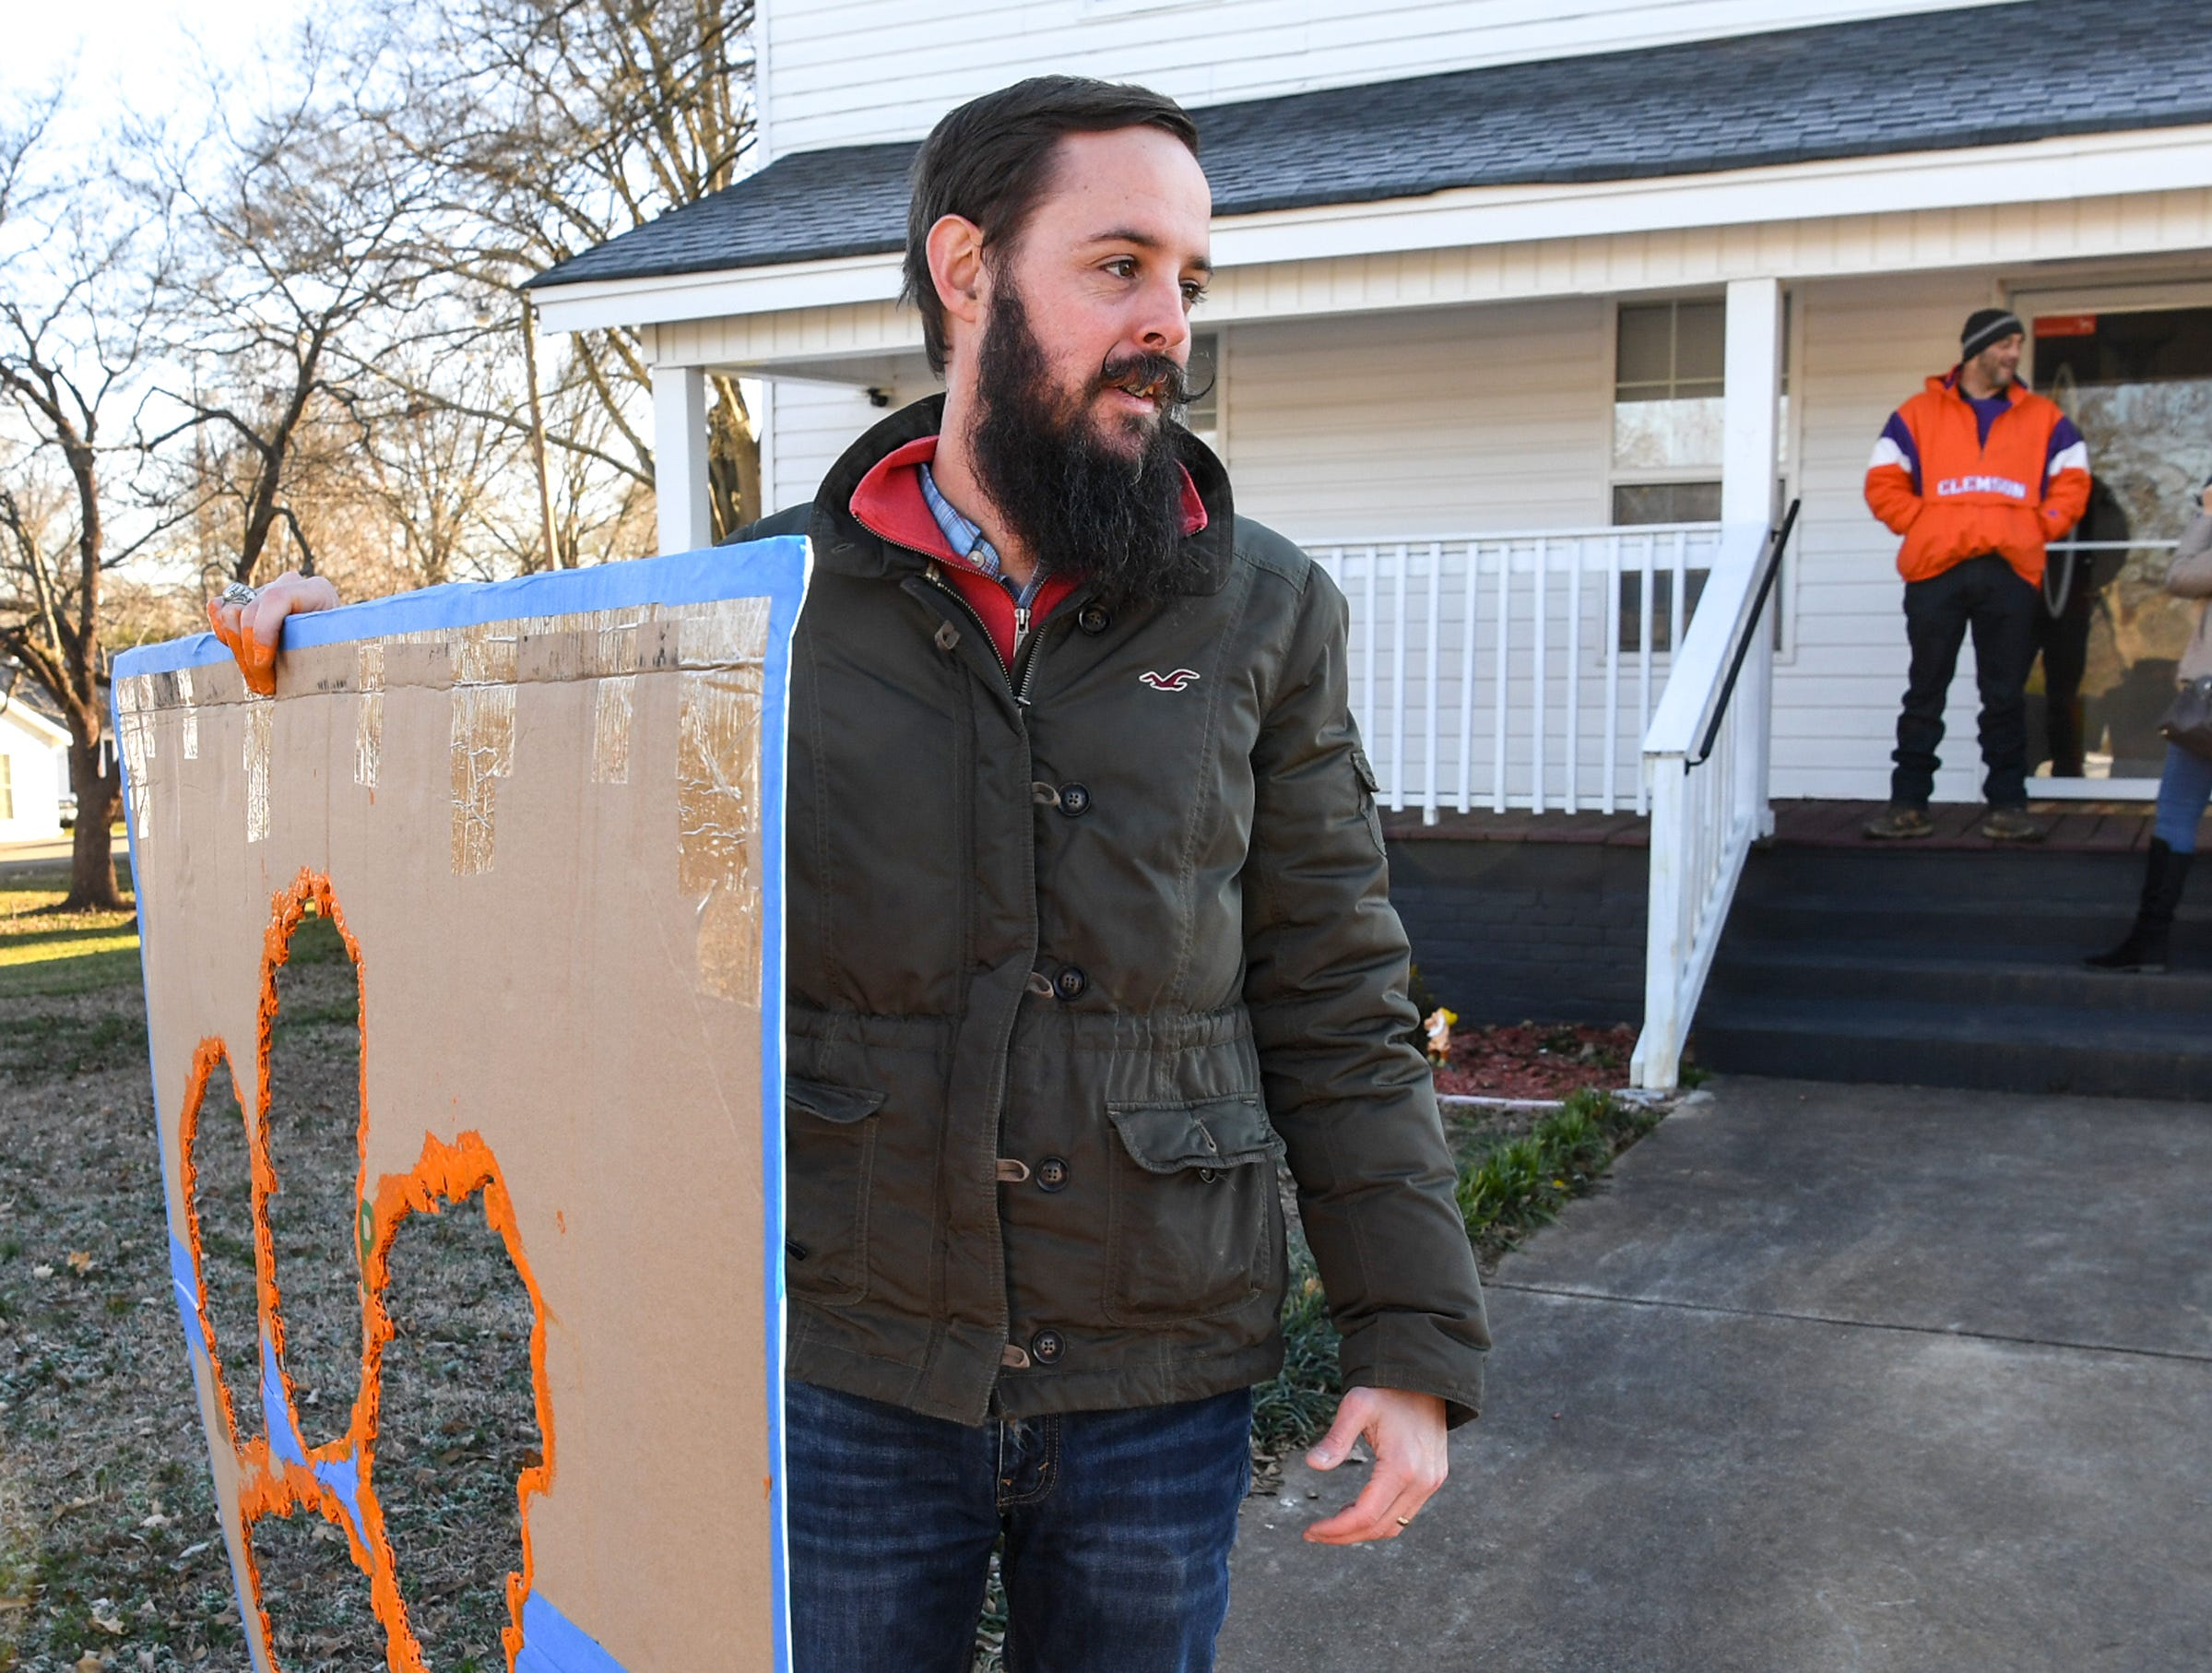 Blake Sanders, West Pelzer mayor, starts painting a tiger paw in the walkway of Eric Smith, right, in West Pelzer Friday. Sanders, planning on painting 40 of them around town on walkways and driveways of those who have asked him through social media.